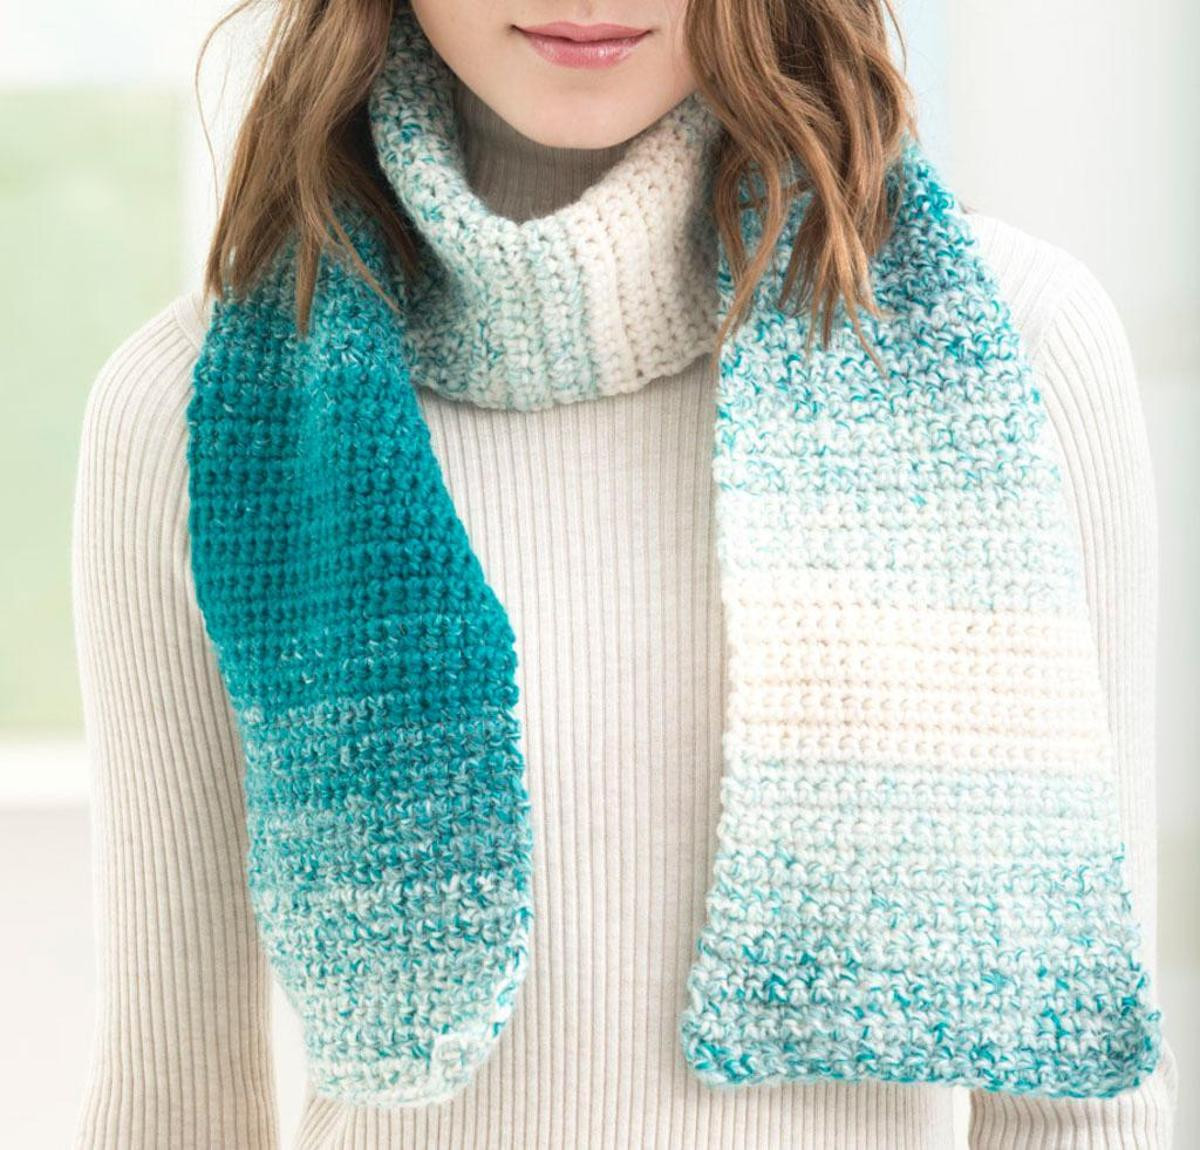 e Stitch Scarfie Scarf Crochet Kit